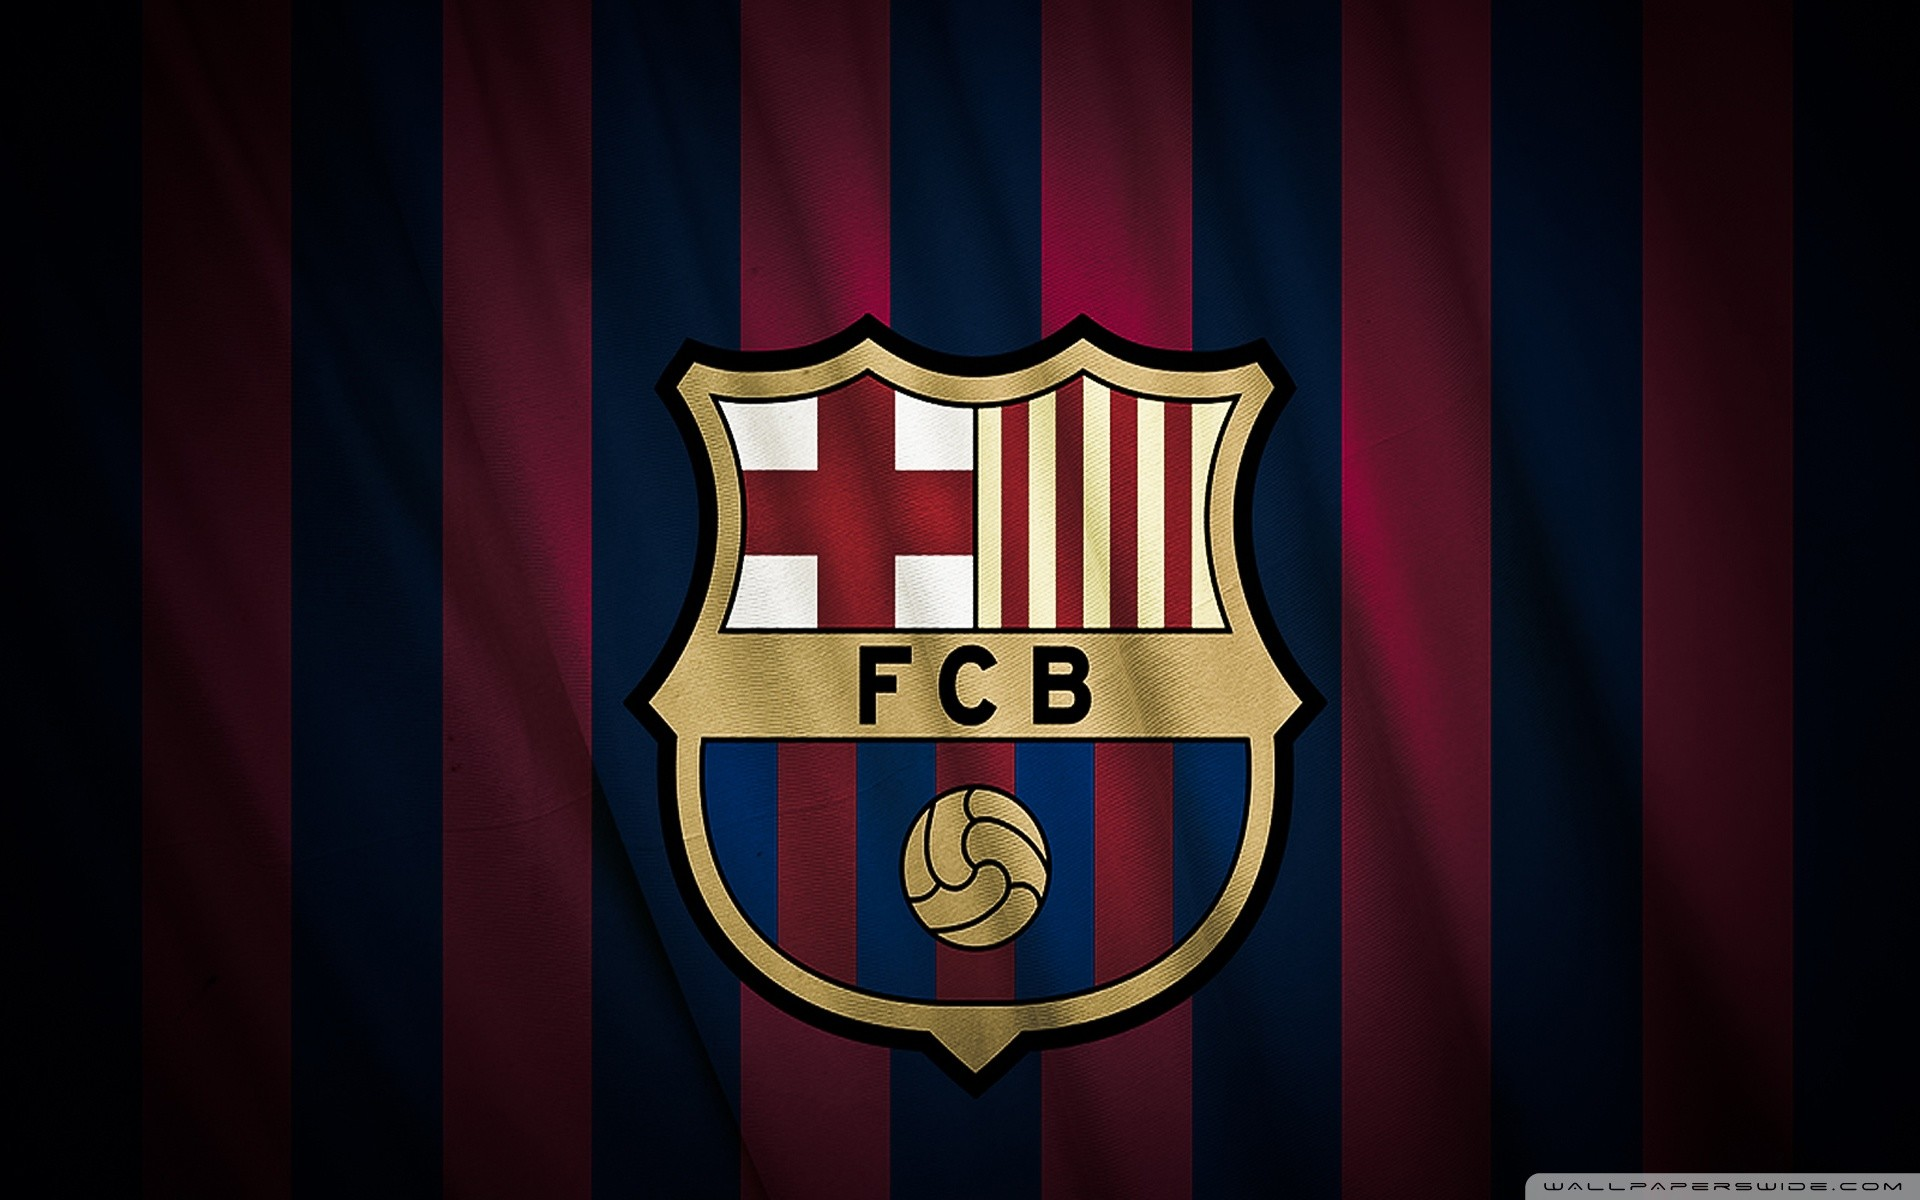 … The Lastest Barcelona Fc Wallpaper iPhone Wallpaper Free Images  Collection Gallery – If You Looking For